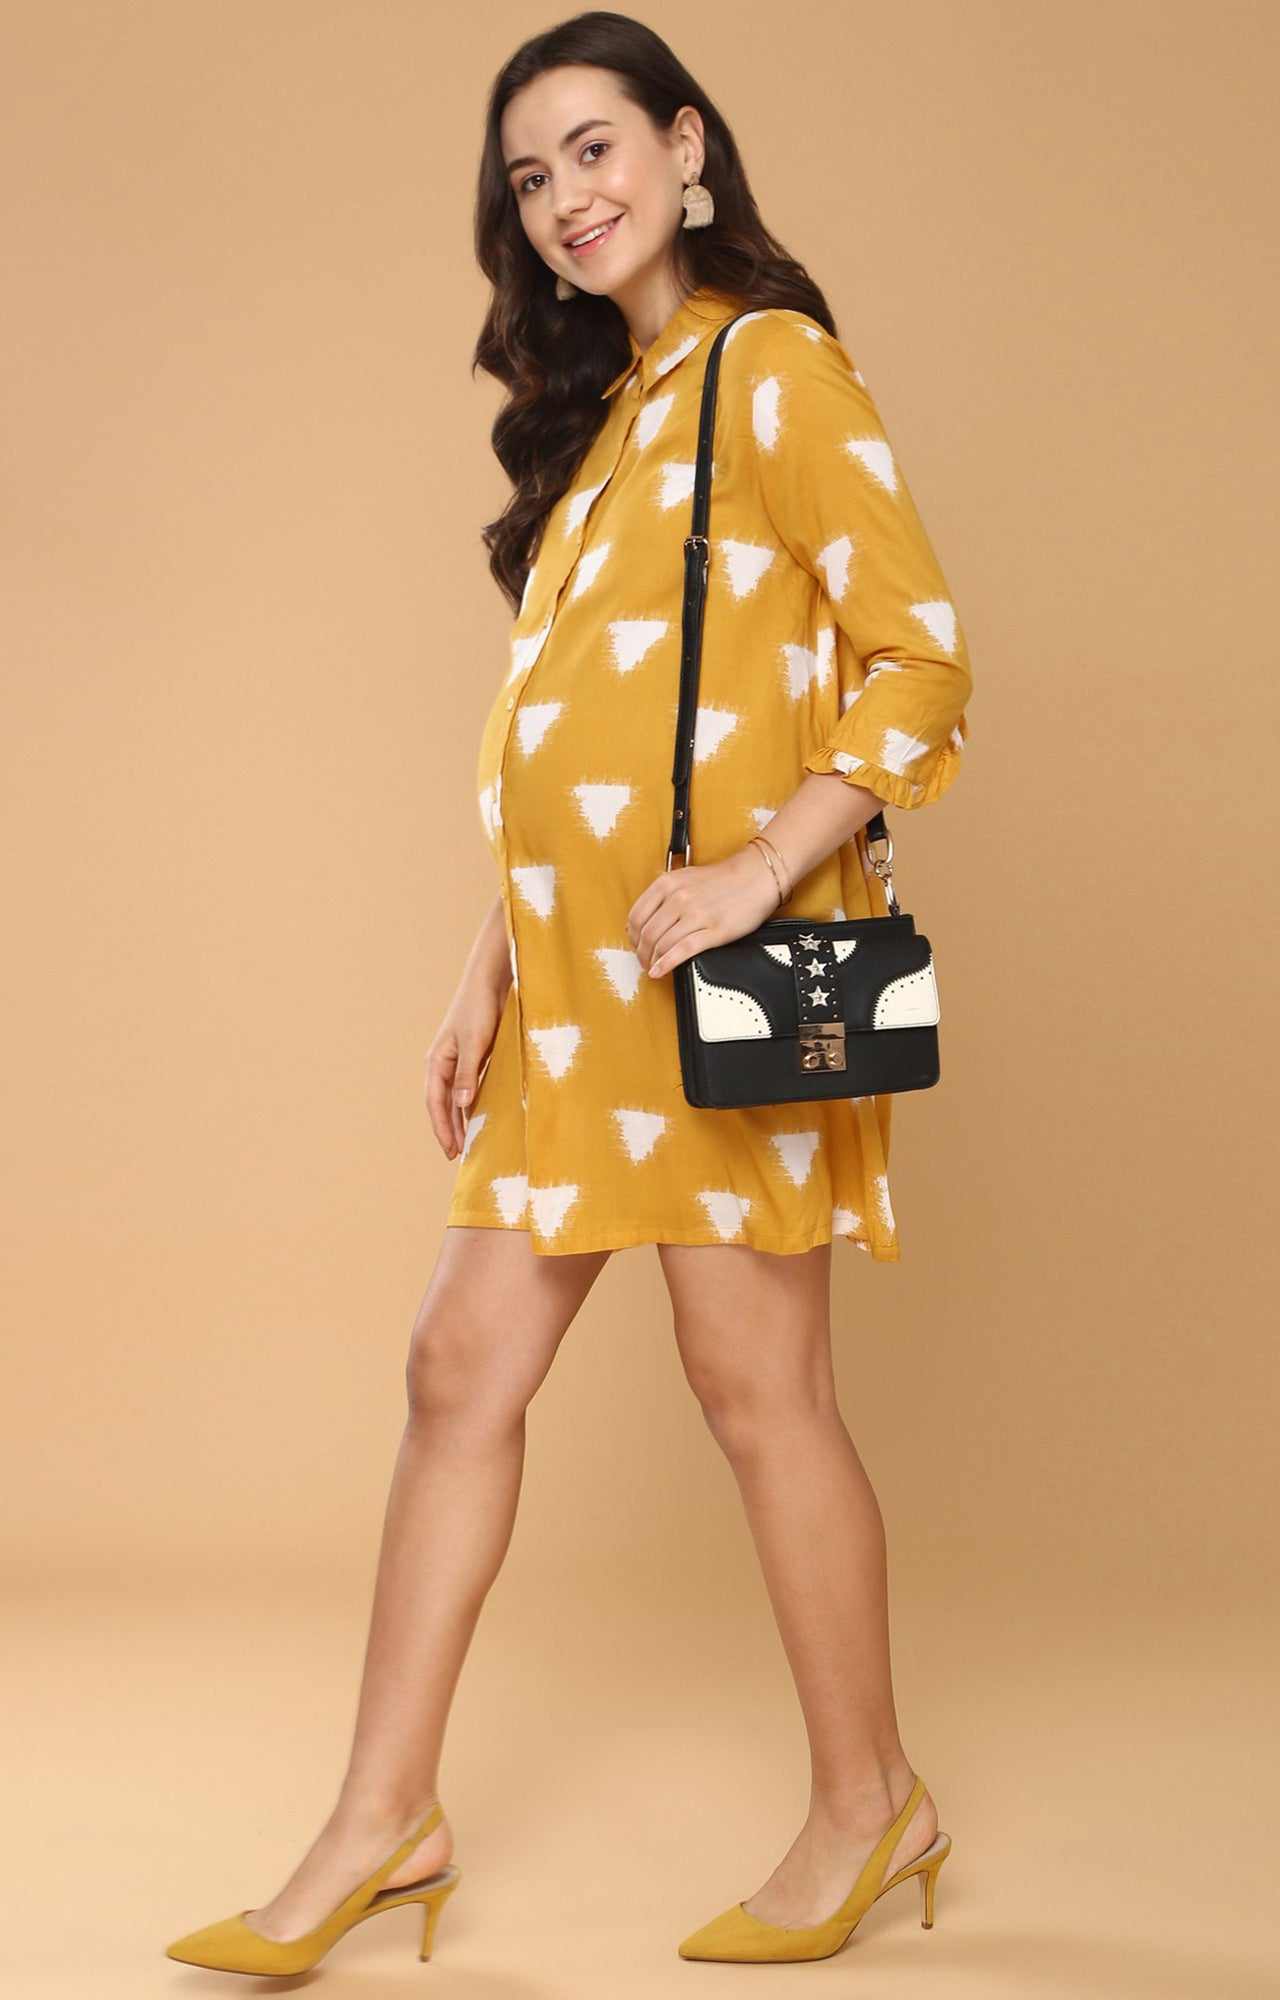 Momsoon Maternity Button Up Floral Print Tunic - momsoon maternity fashion wear